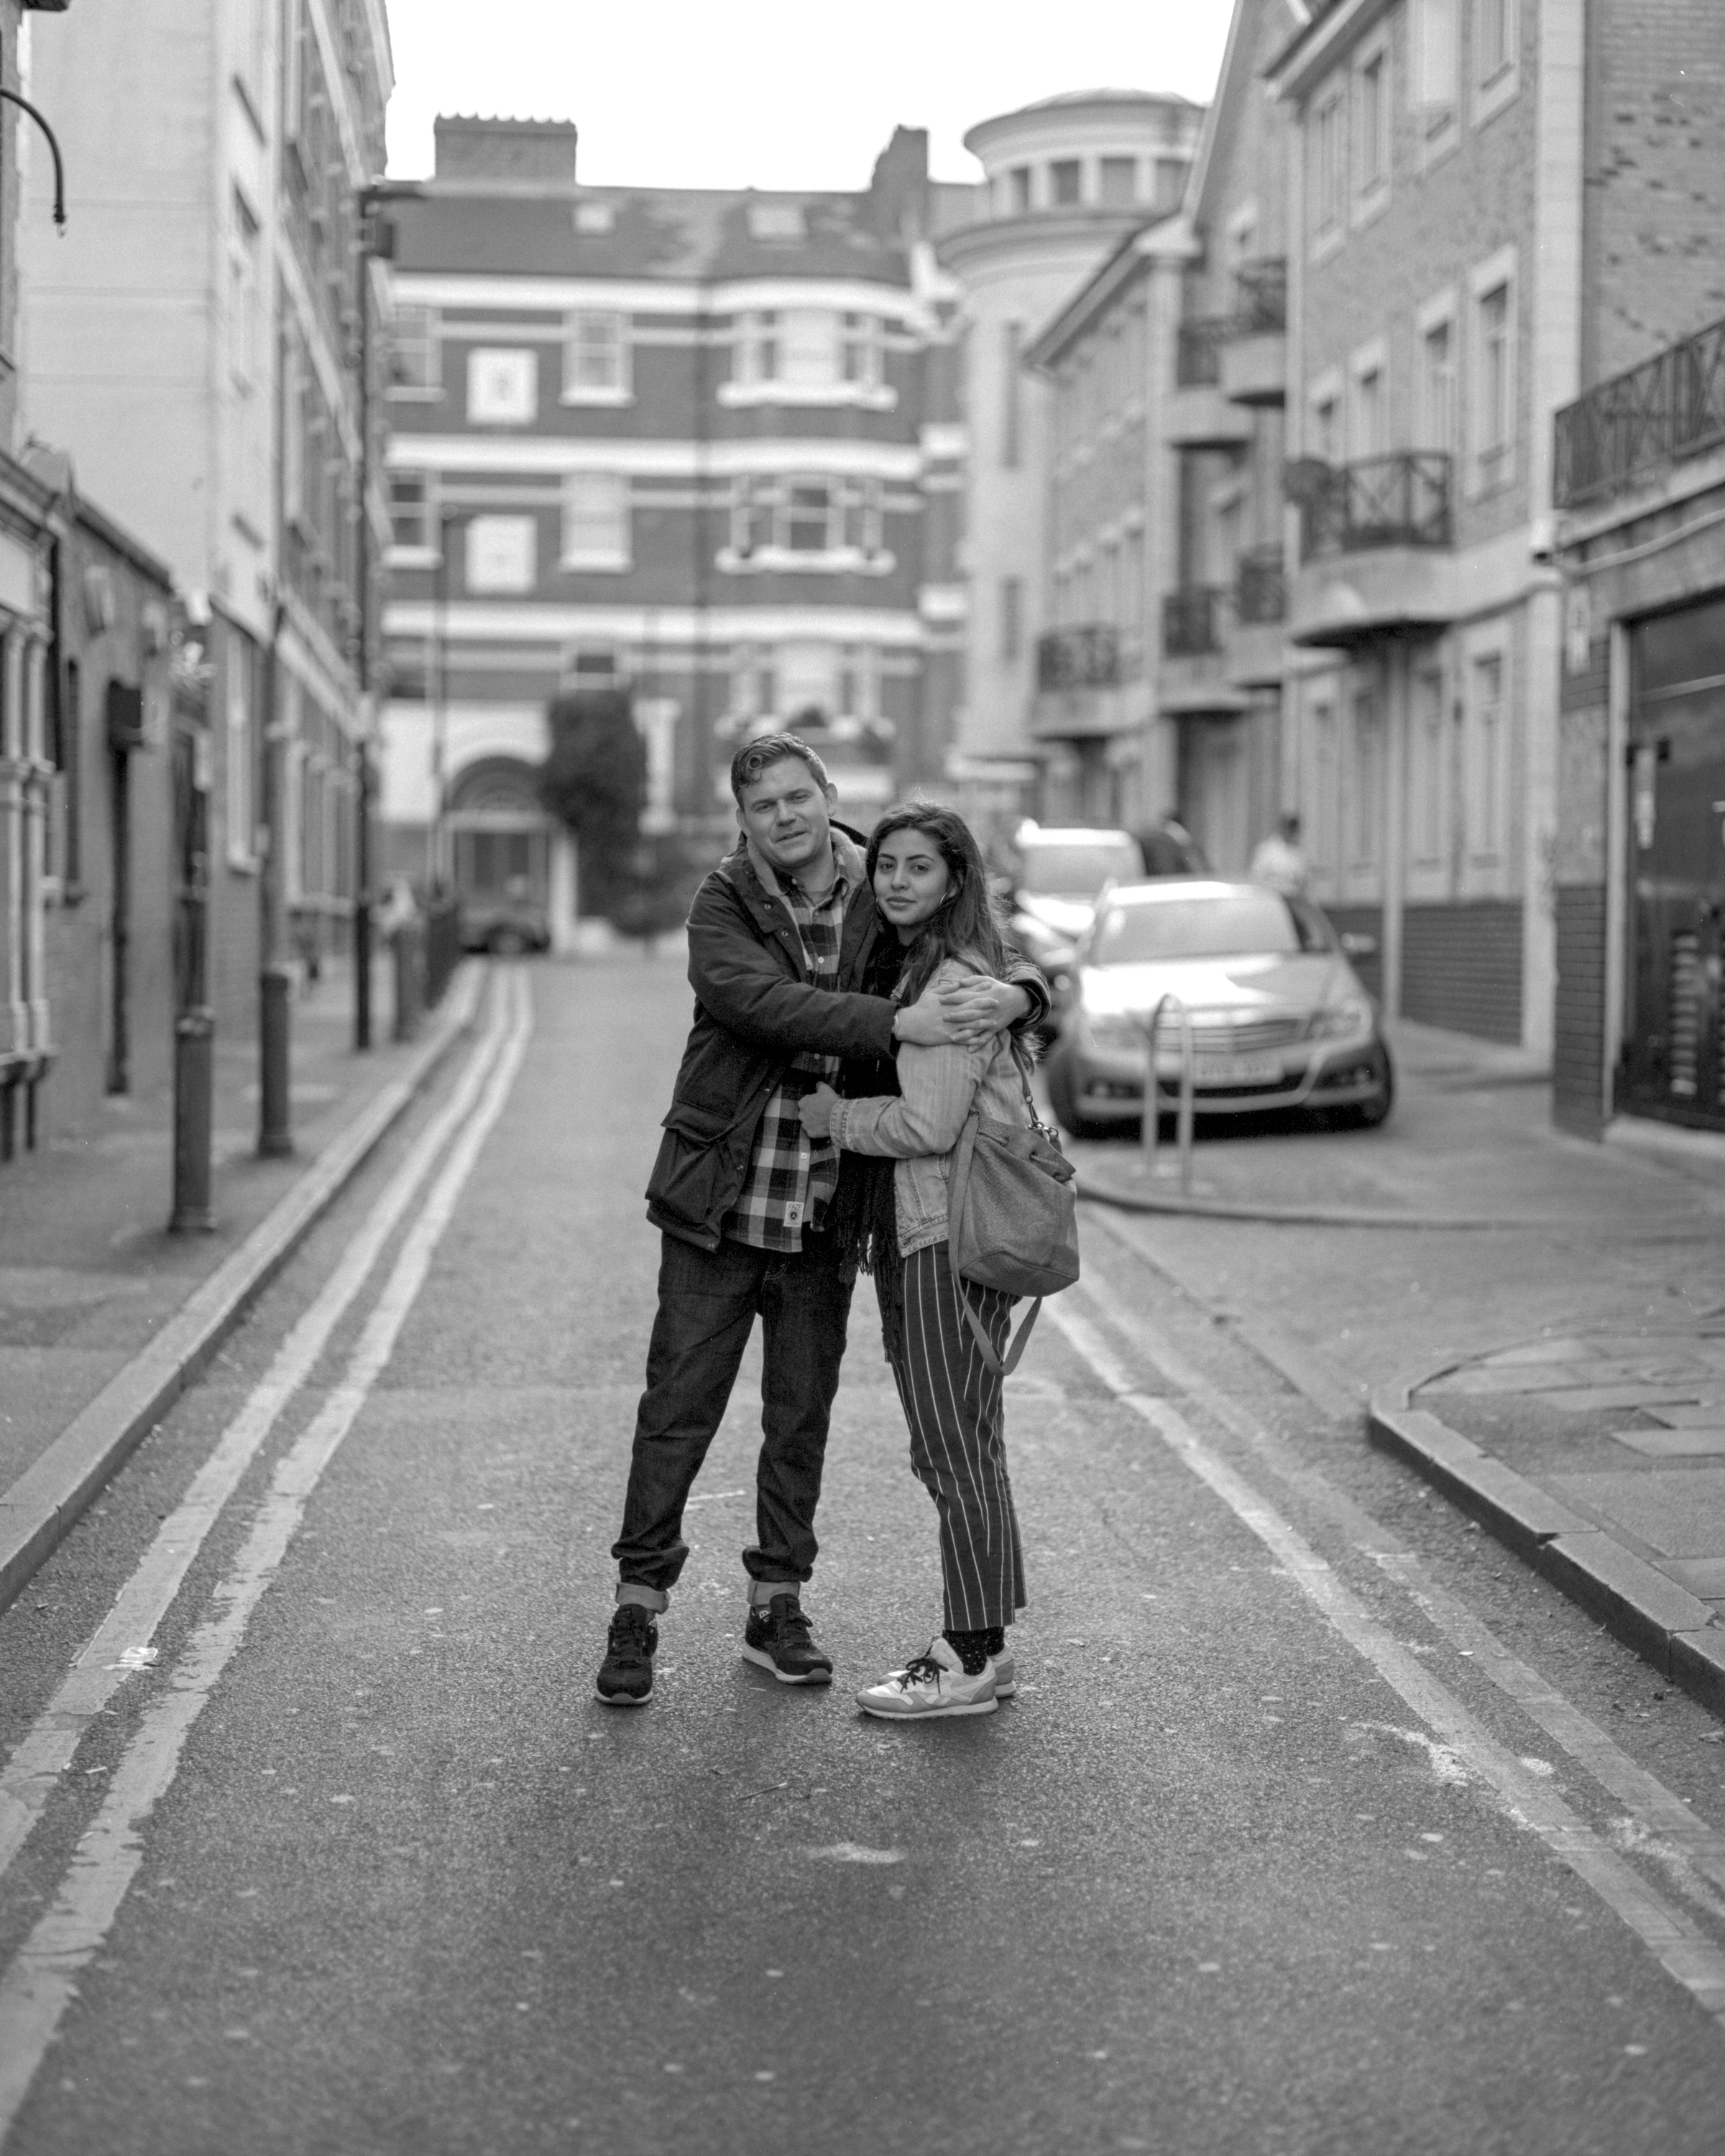 The Brixton couple  Pentax 67, Takumar 105mm, Ilford HP5